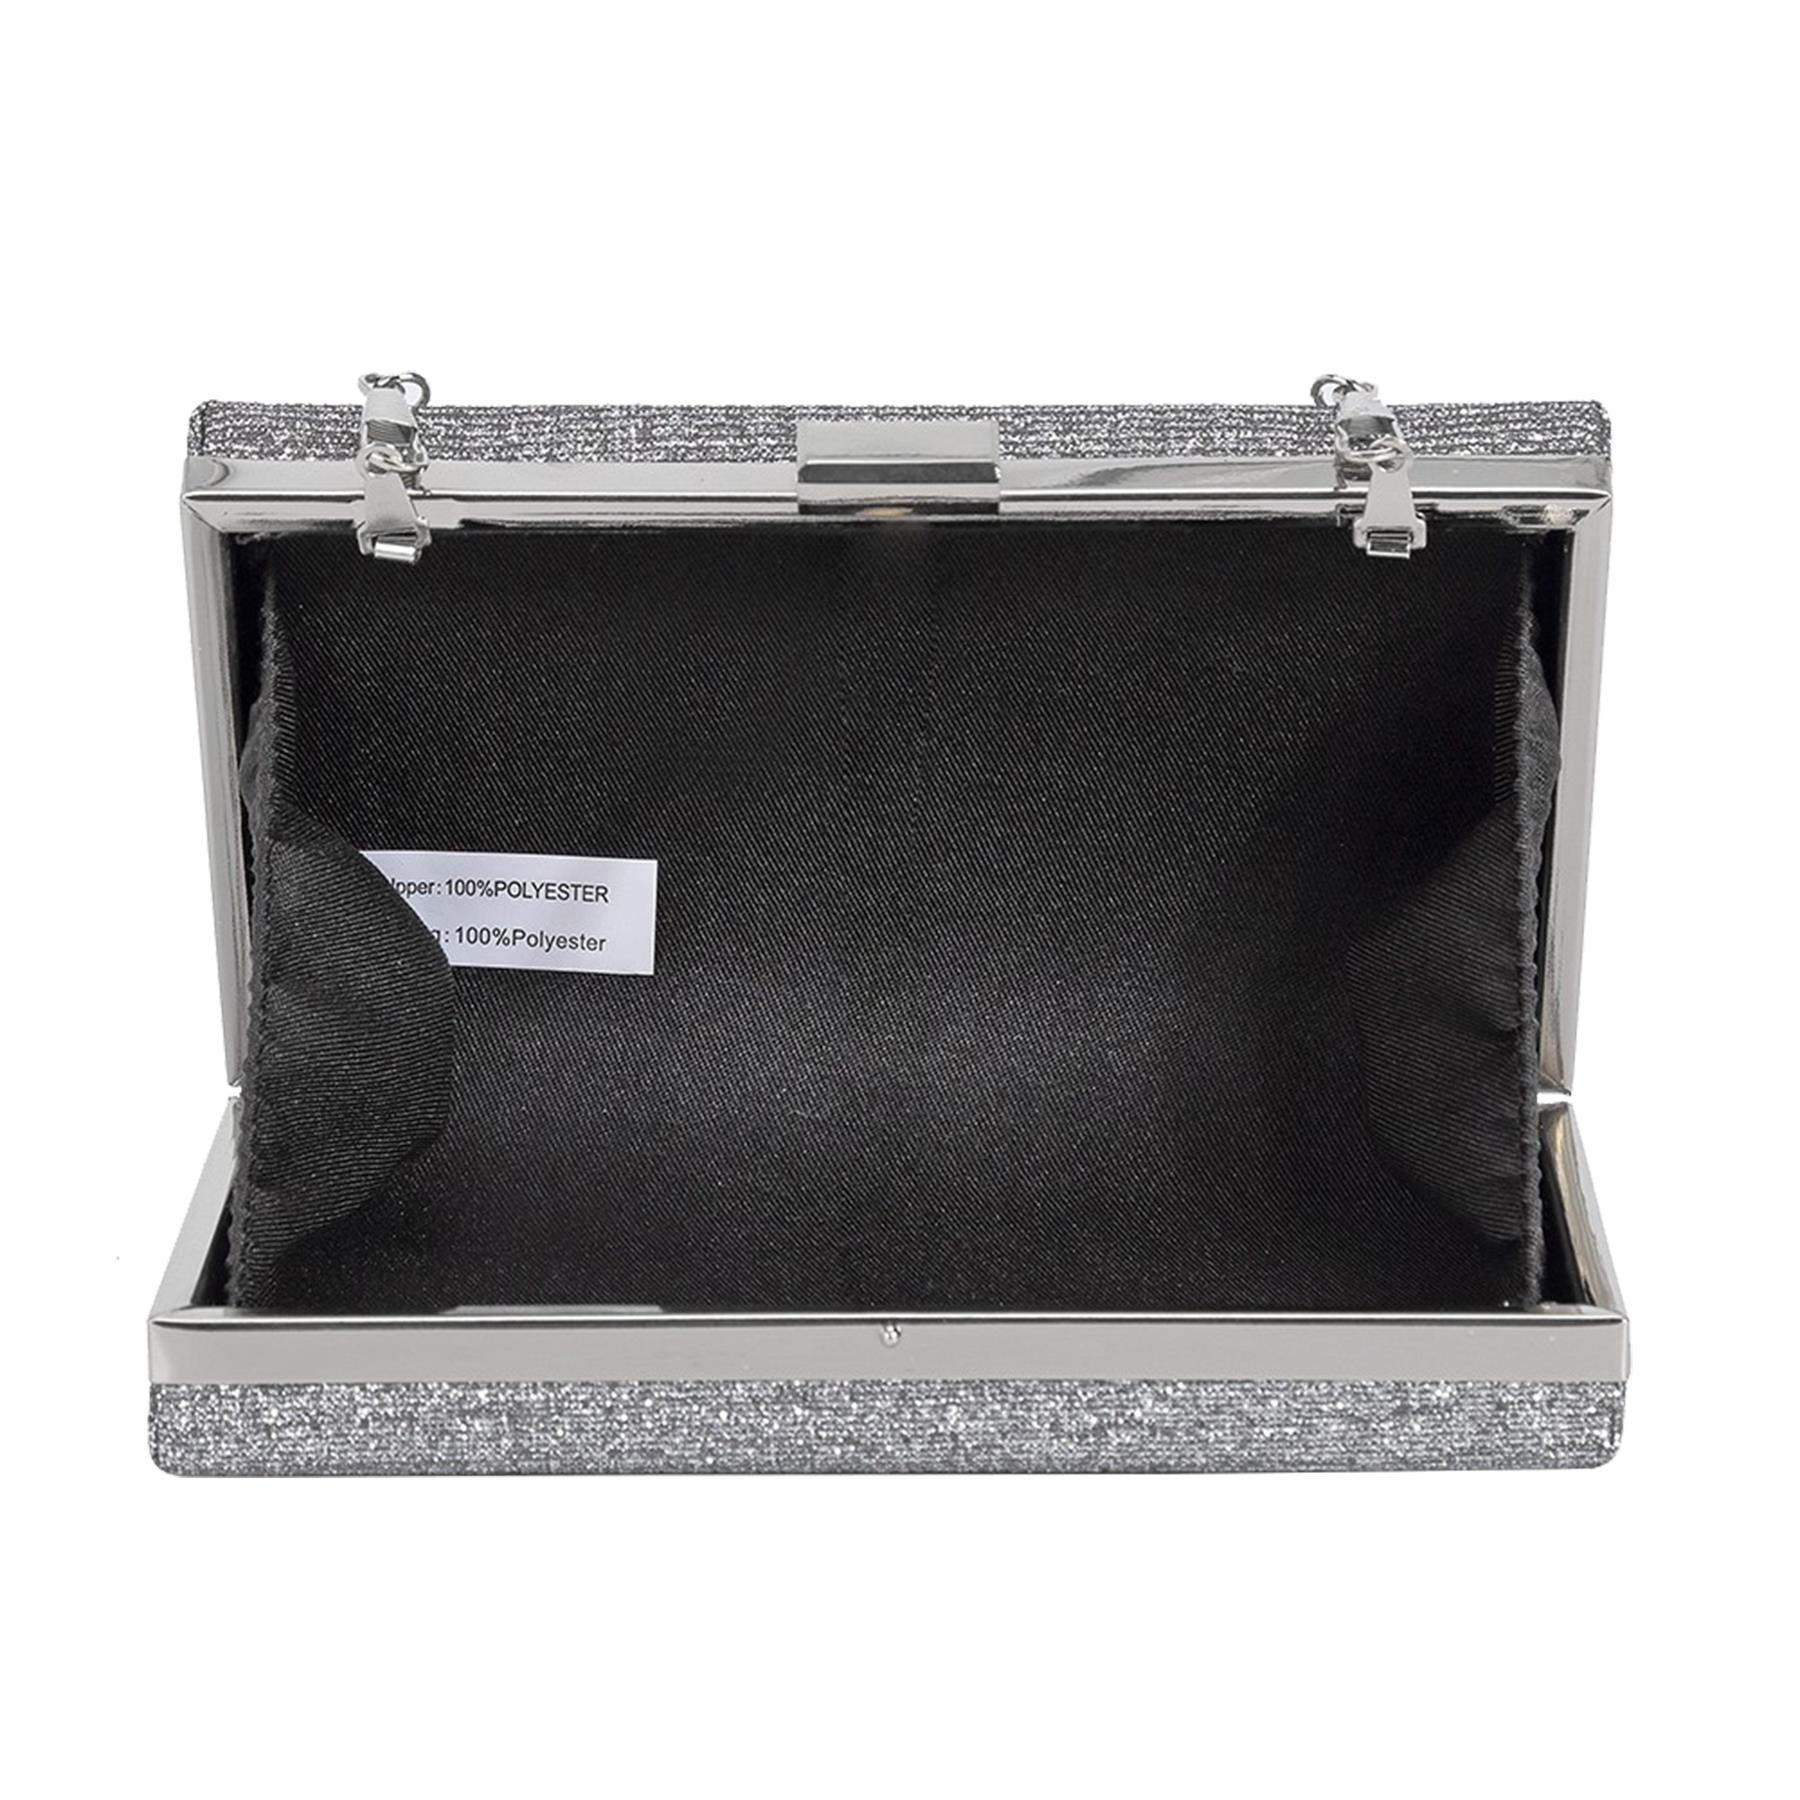 New-Sparkly-Shimmer-Glitter-Chain-Ladies-Hard-Compact-Bridal-Clutch-Bag-Purse thumbnail 10